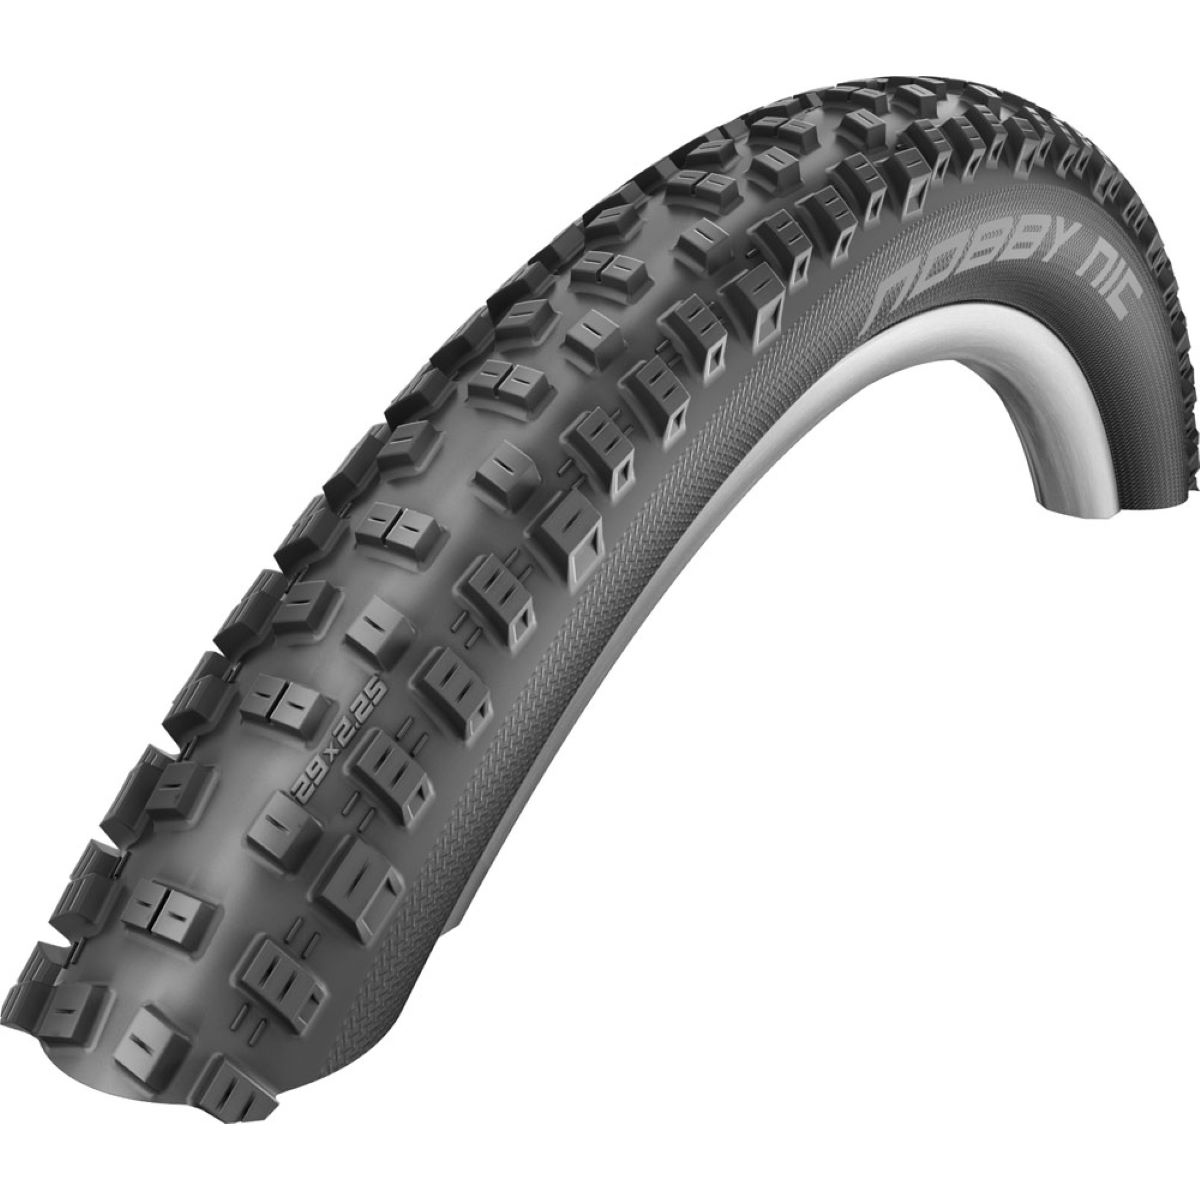 Pneu Schwalbe Nobby Nic Performance Dual Compound (souple) - 2.35' 26'